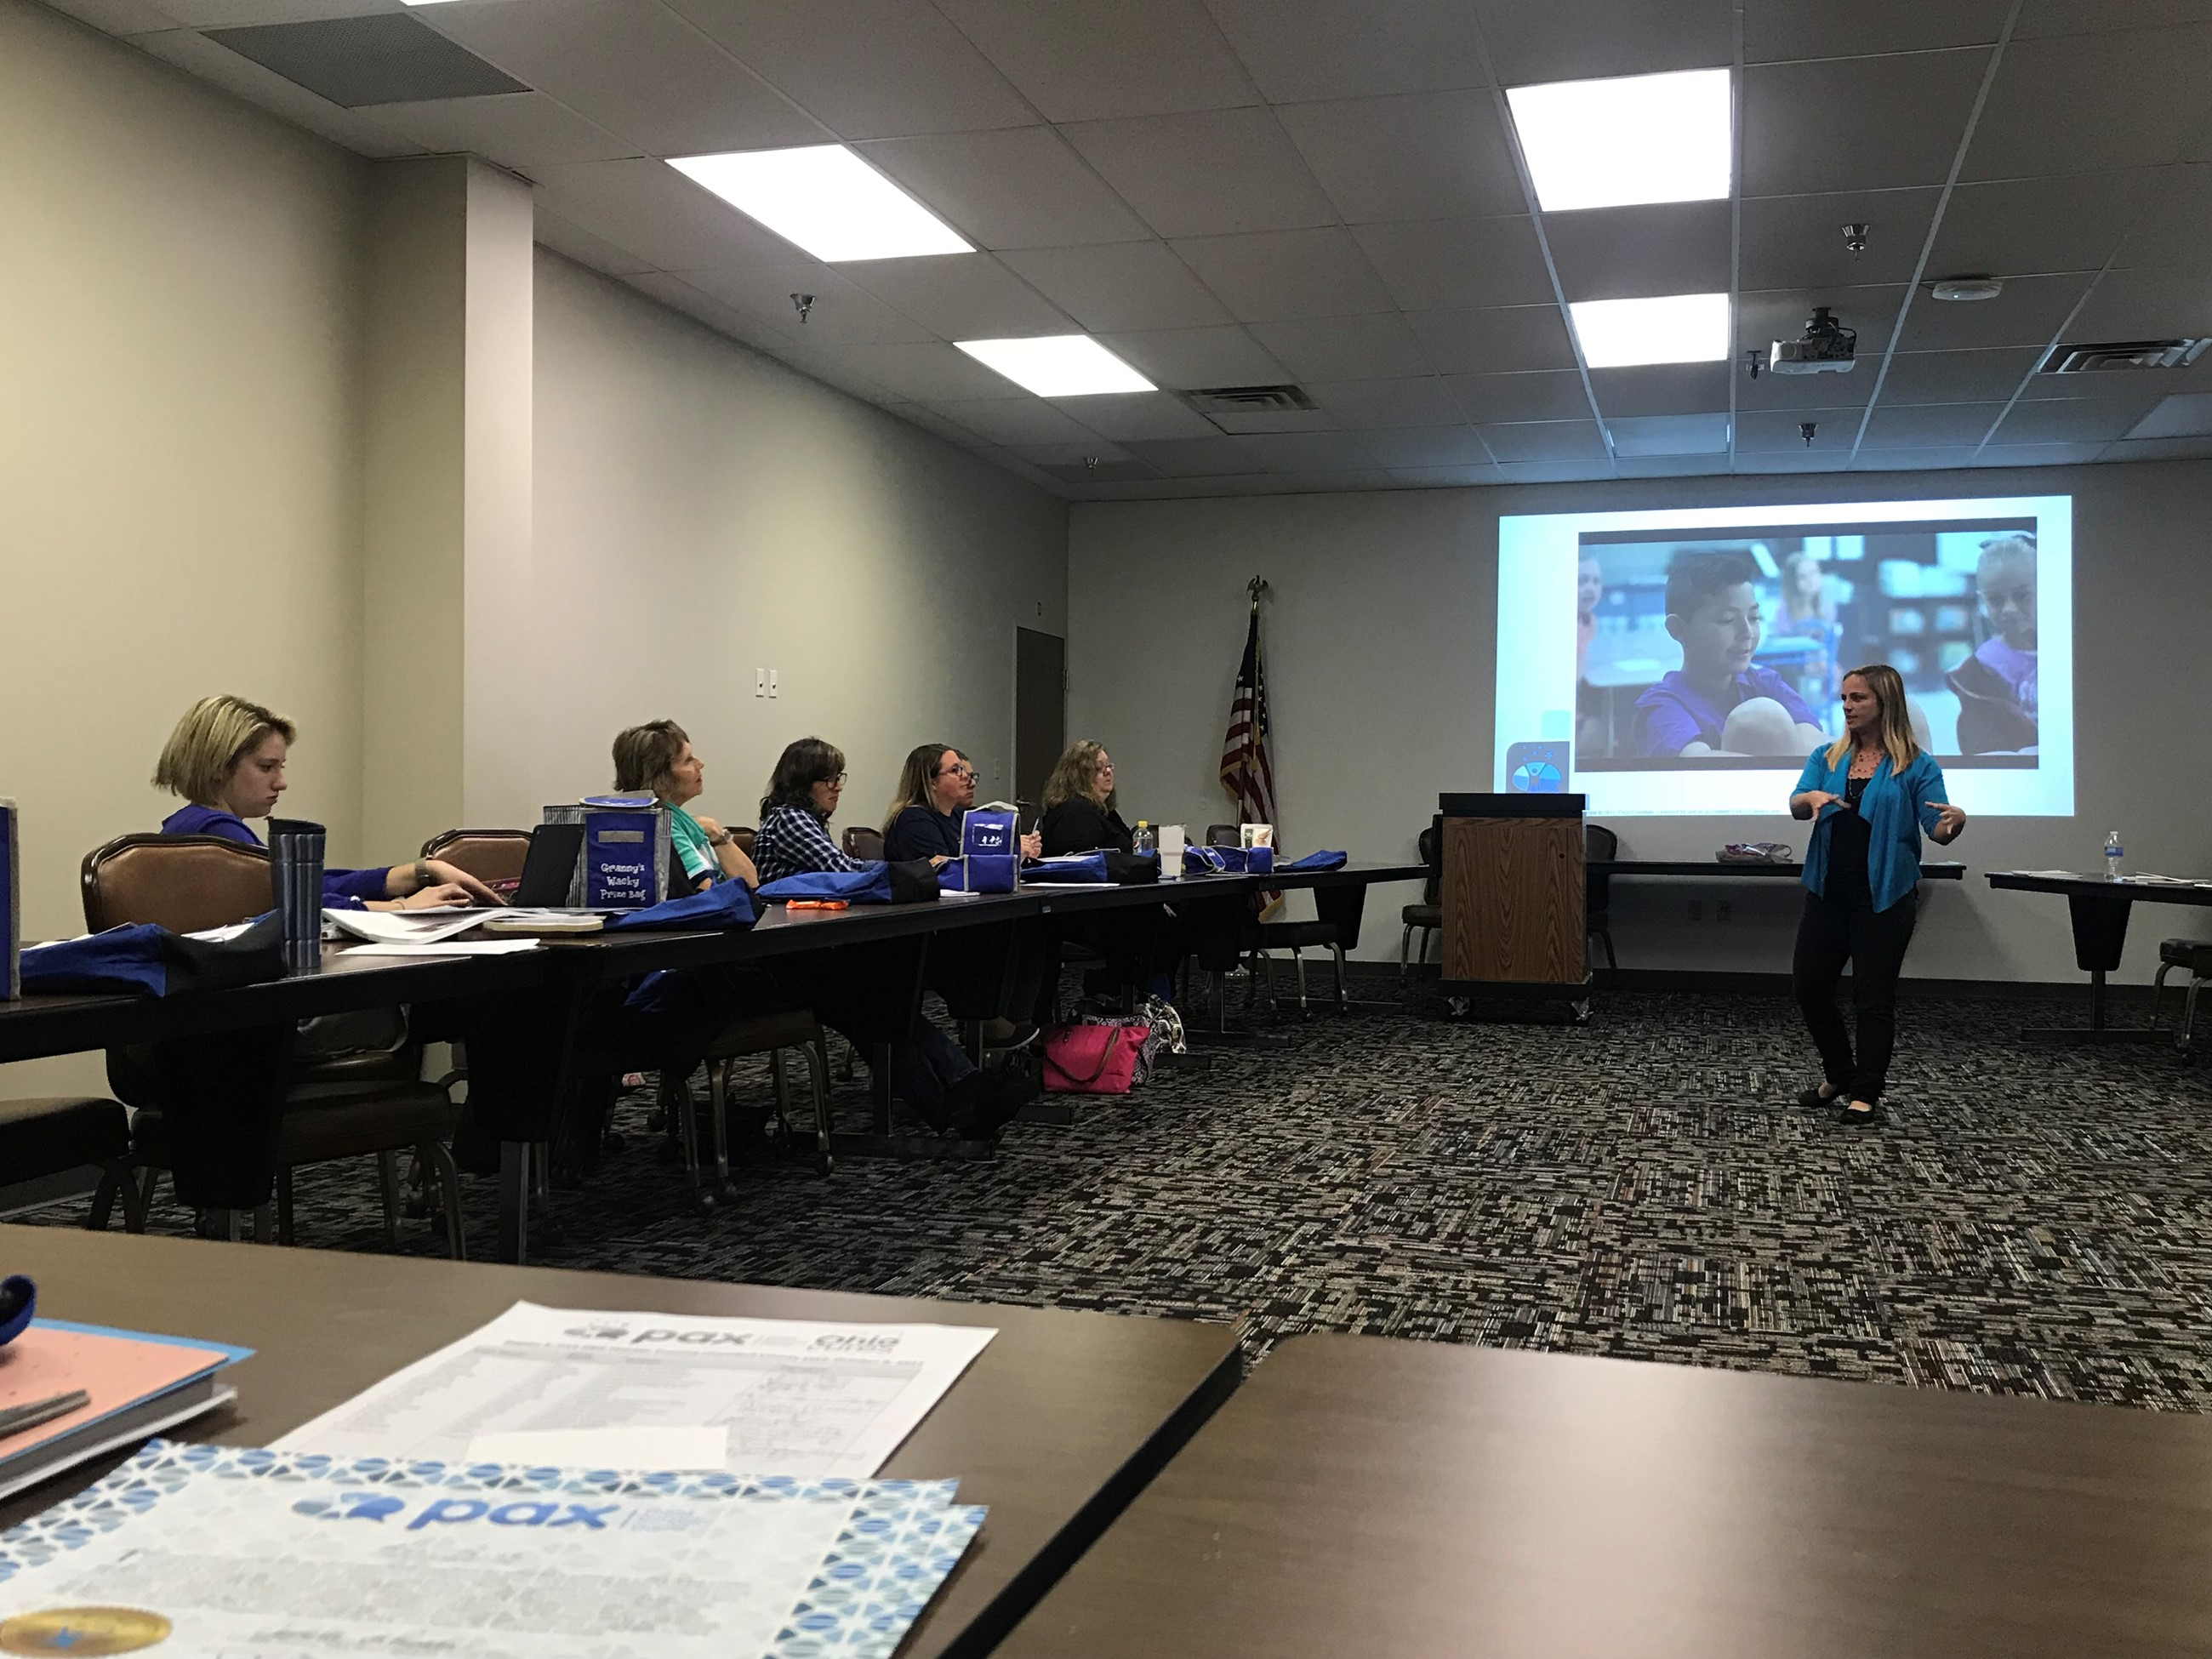 Trumbull County teachers participated in preventative intervention training that they will use in their classrooms. The training was held in the TCESC conference room.